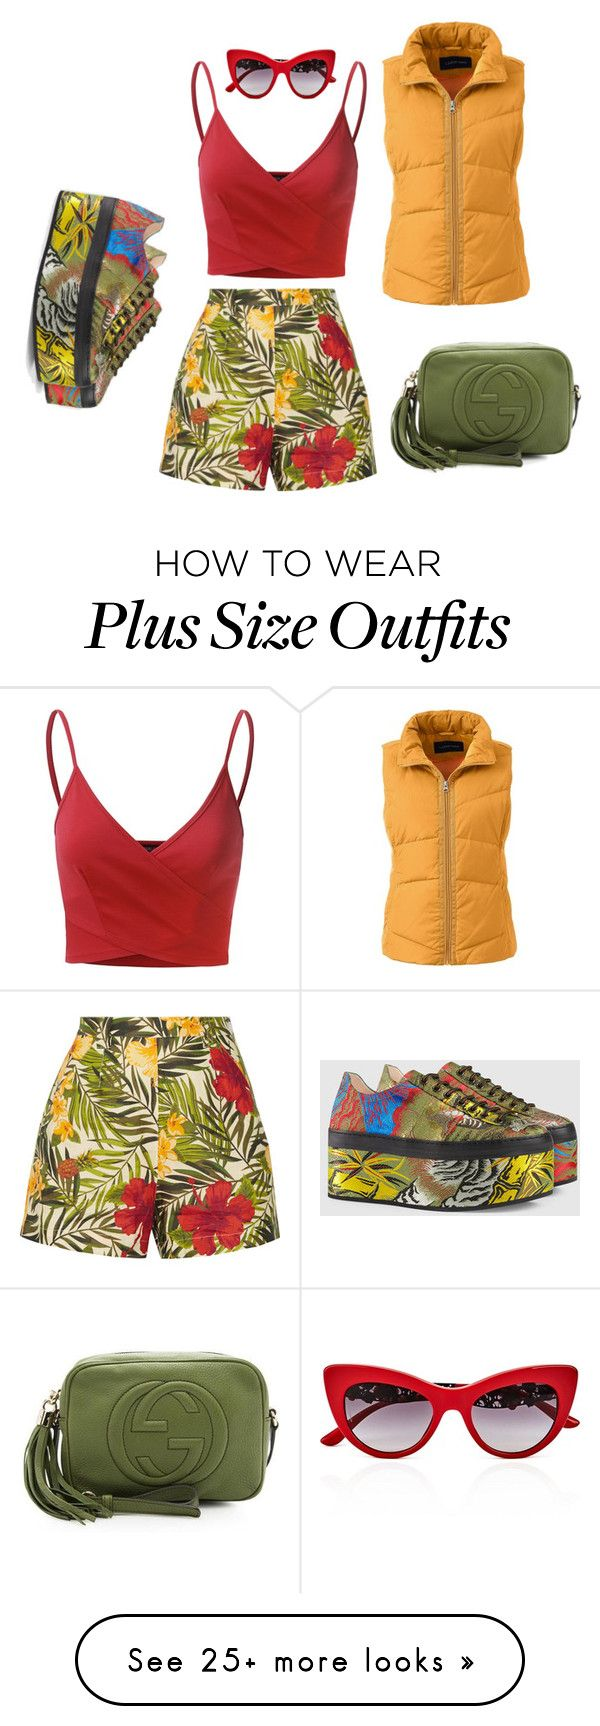 """""""colours"""" by roushanbouzo on Polyvore featuring Miguelina, Gucci, Lands' End, Doublju, Dolce&Gabbana and plus size clothing"""